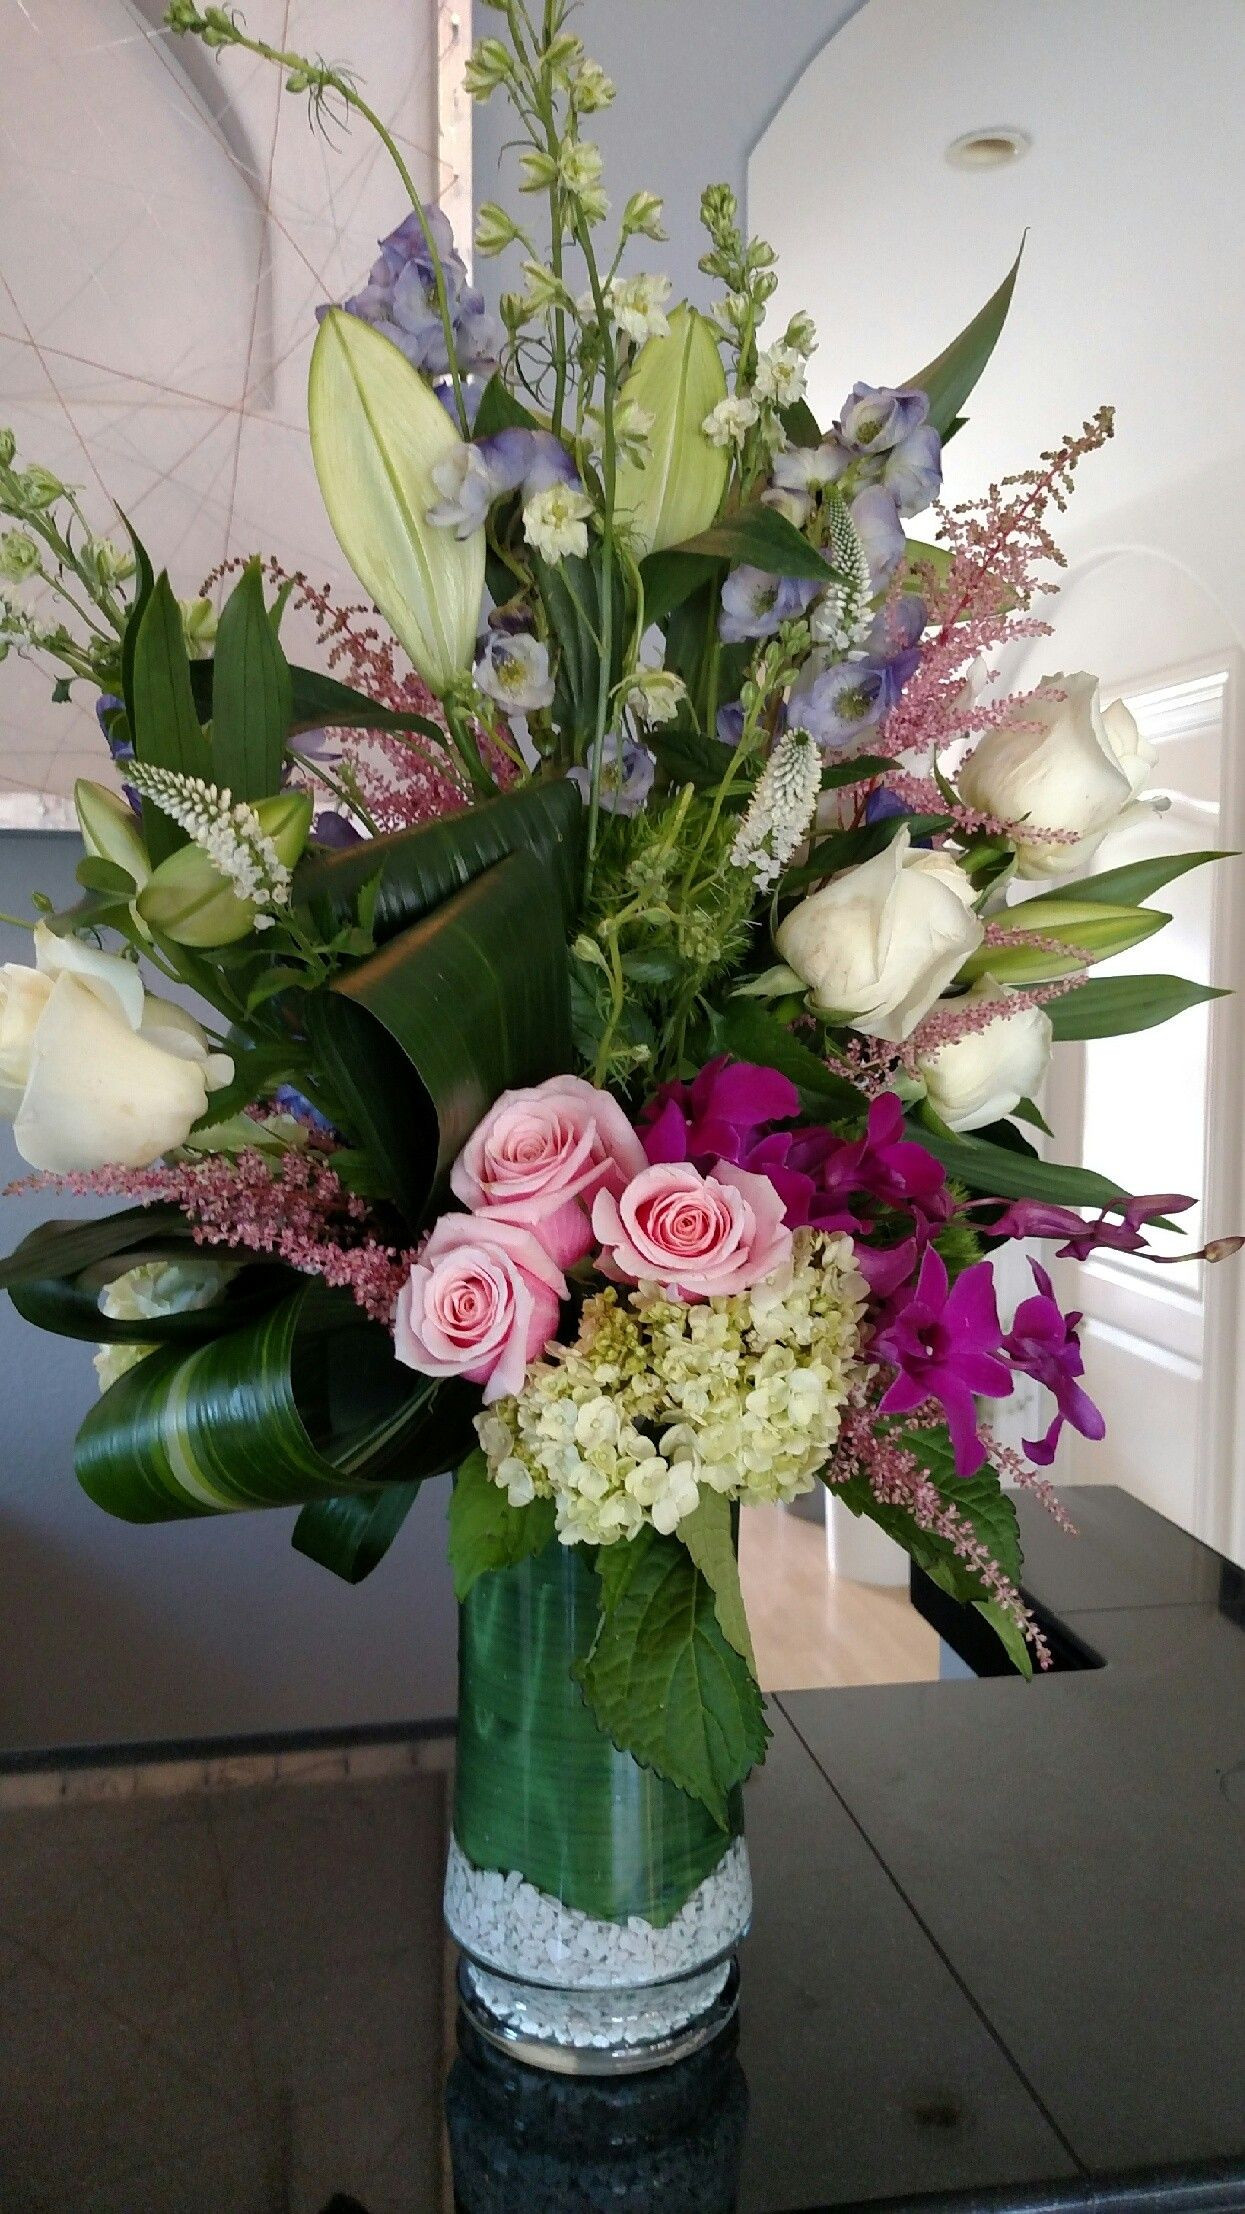 Send Mixed Bouquet in Encinitas CA from Floral Design by Ari the best florist